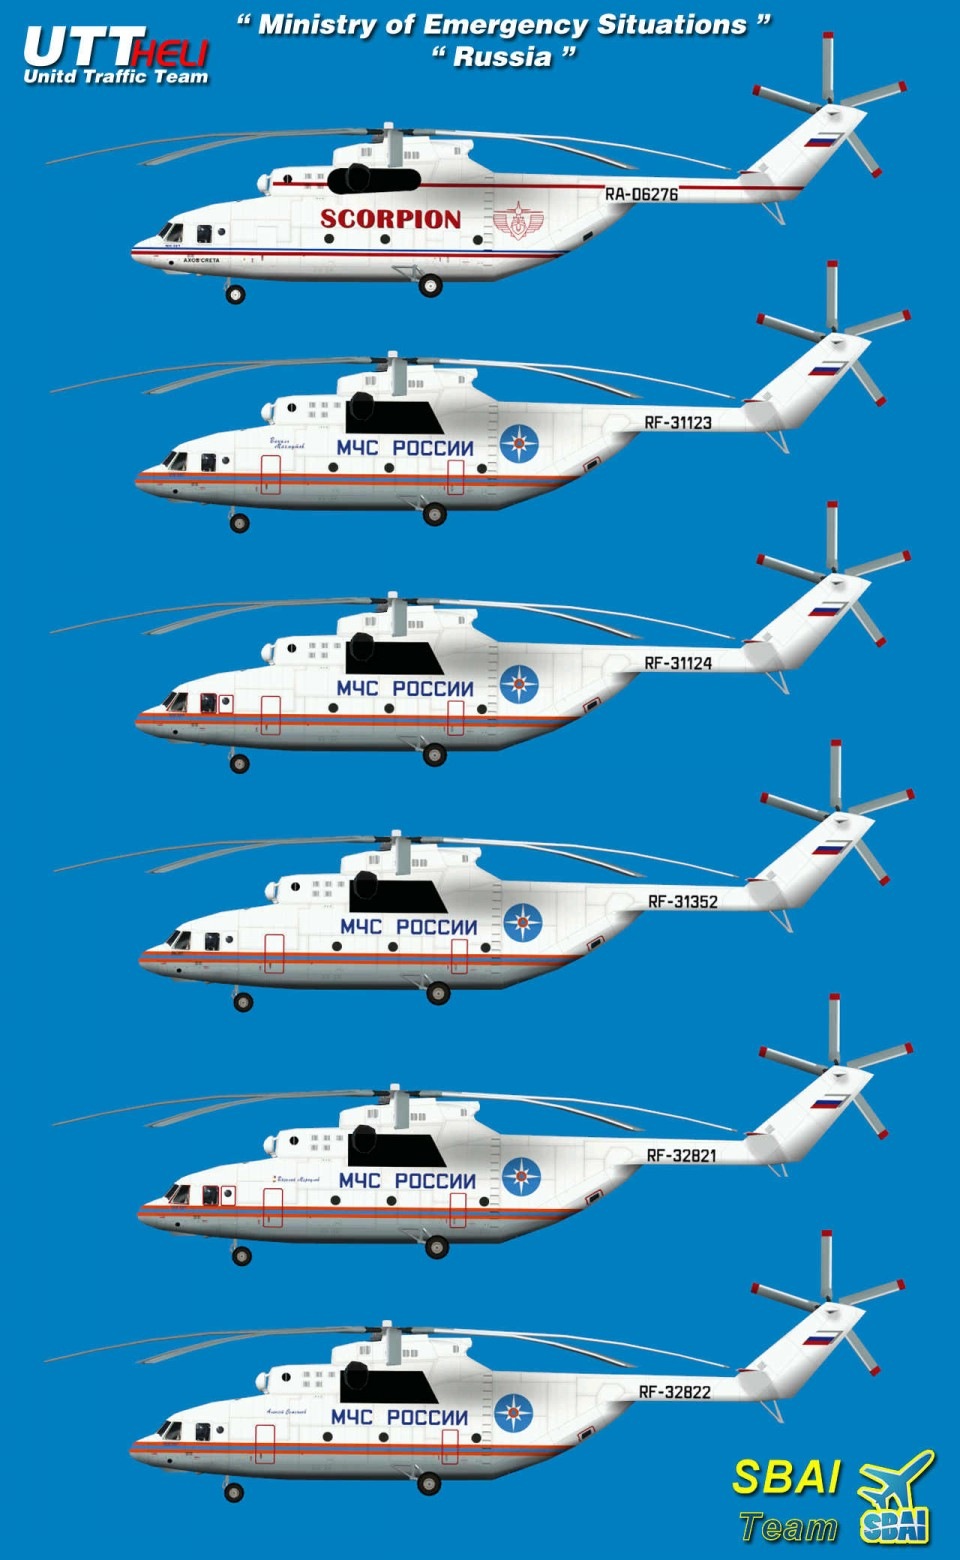 SBAI AI Helicopters Mi-26 Ministry of Emergency Situations (Russia)